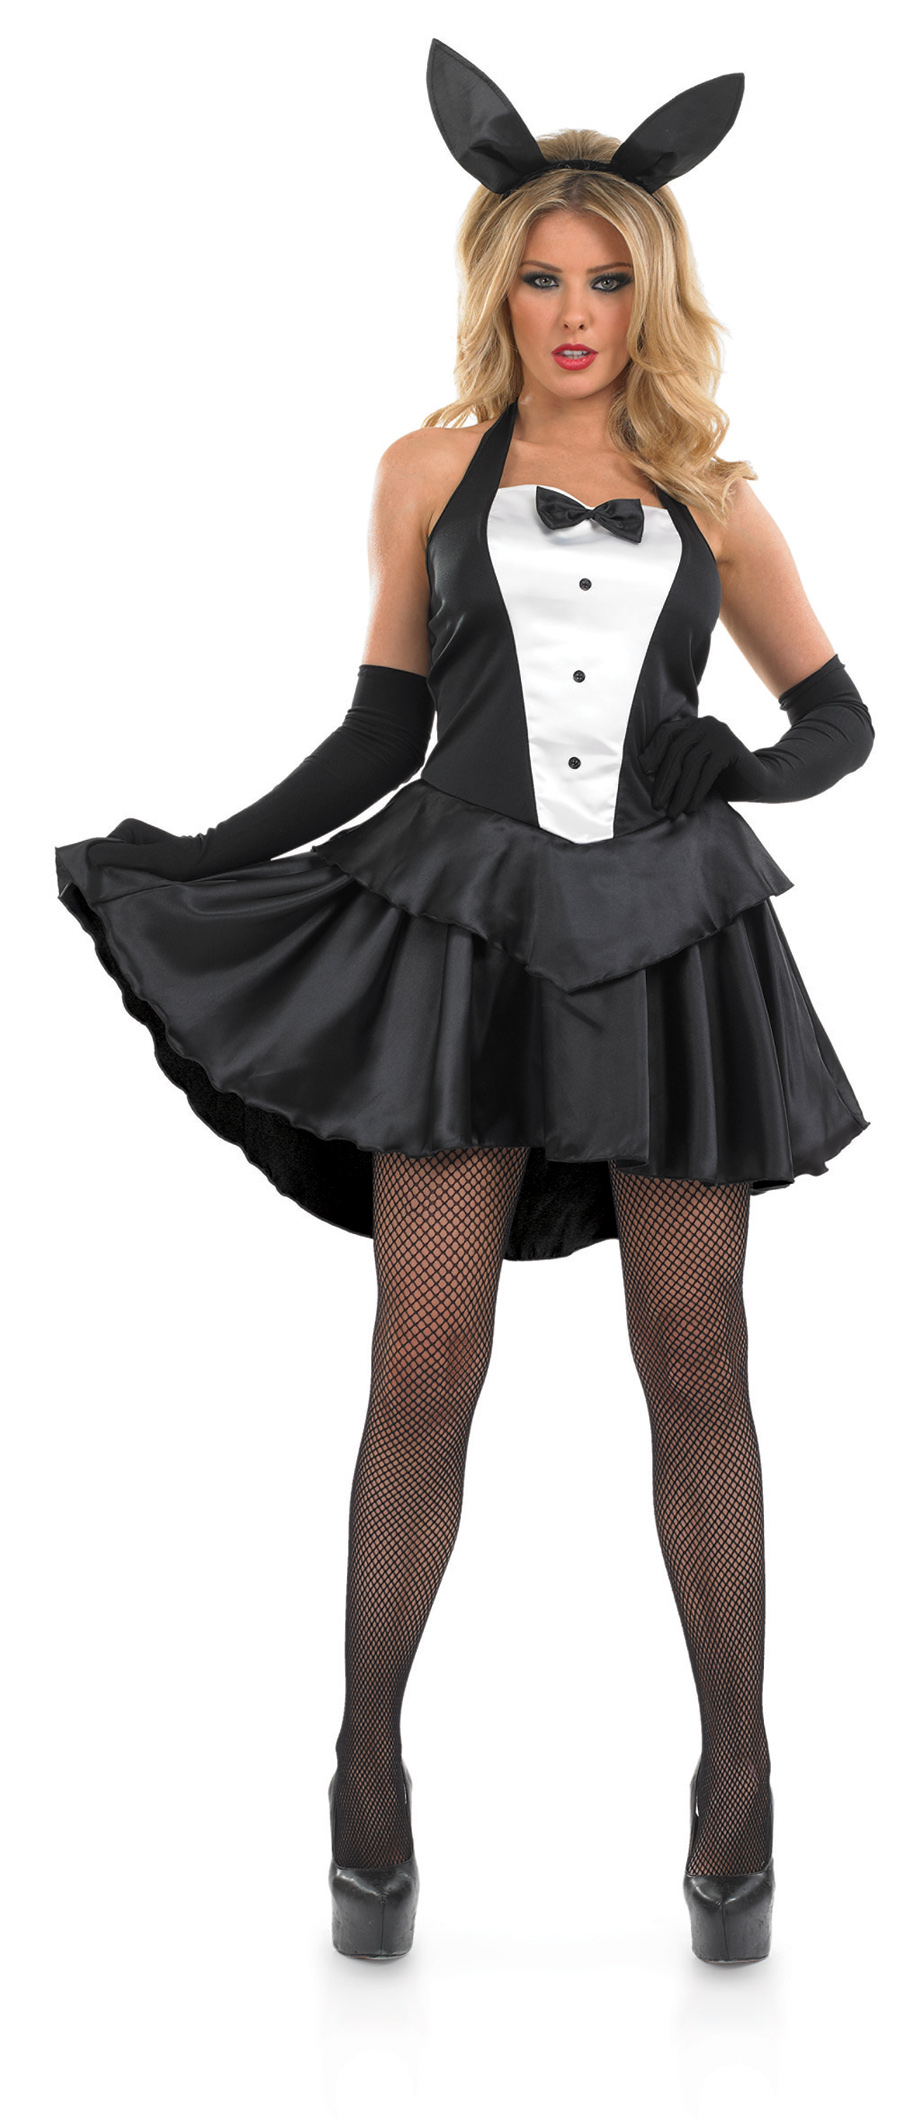 Bunny Hostess Girl Costume  sc 1 st  Mega Fancy Dress & Bunny Hostess Girl Costume | All Ladies Costumes | Mega Fancy Dress